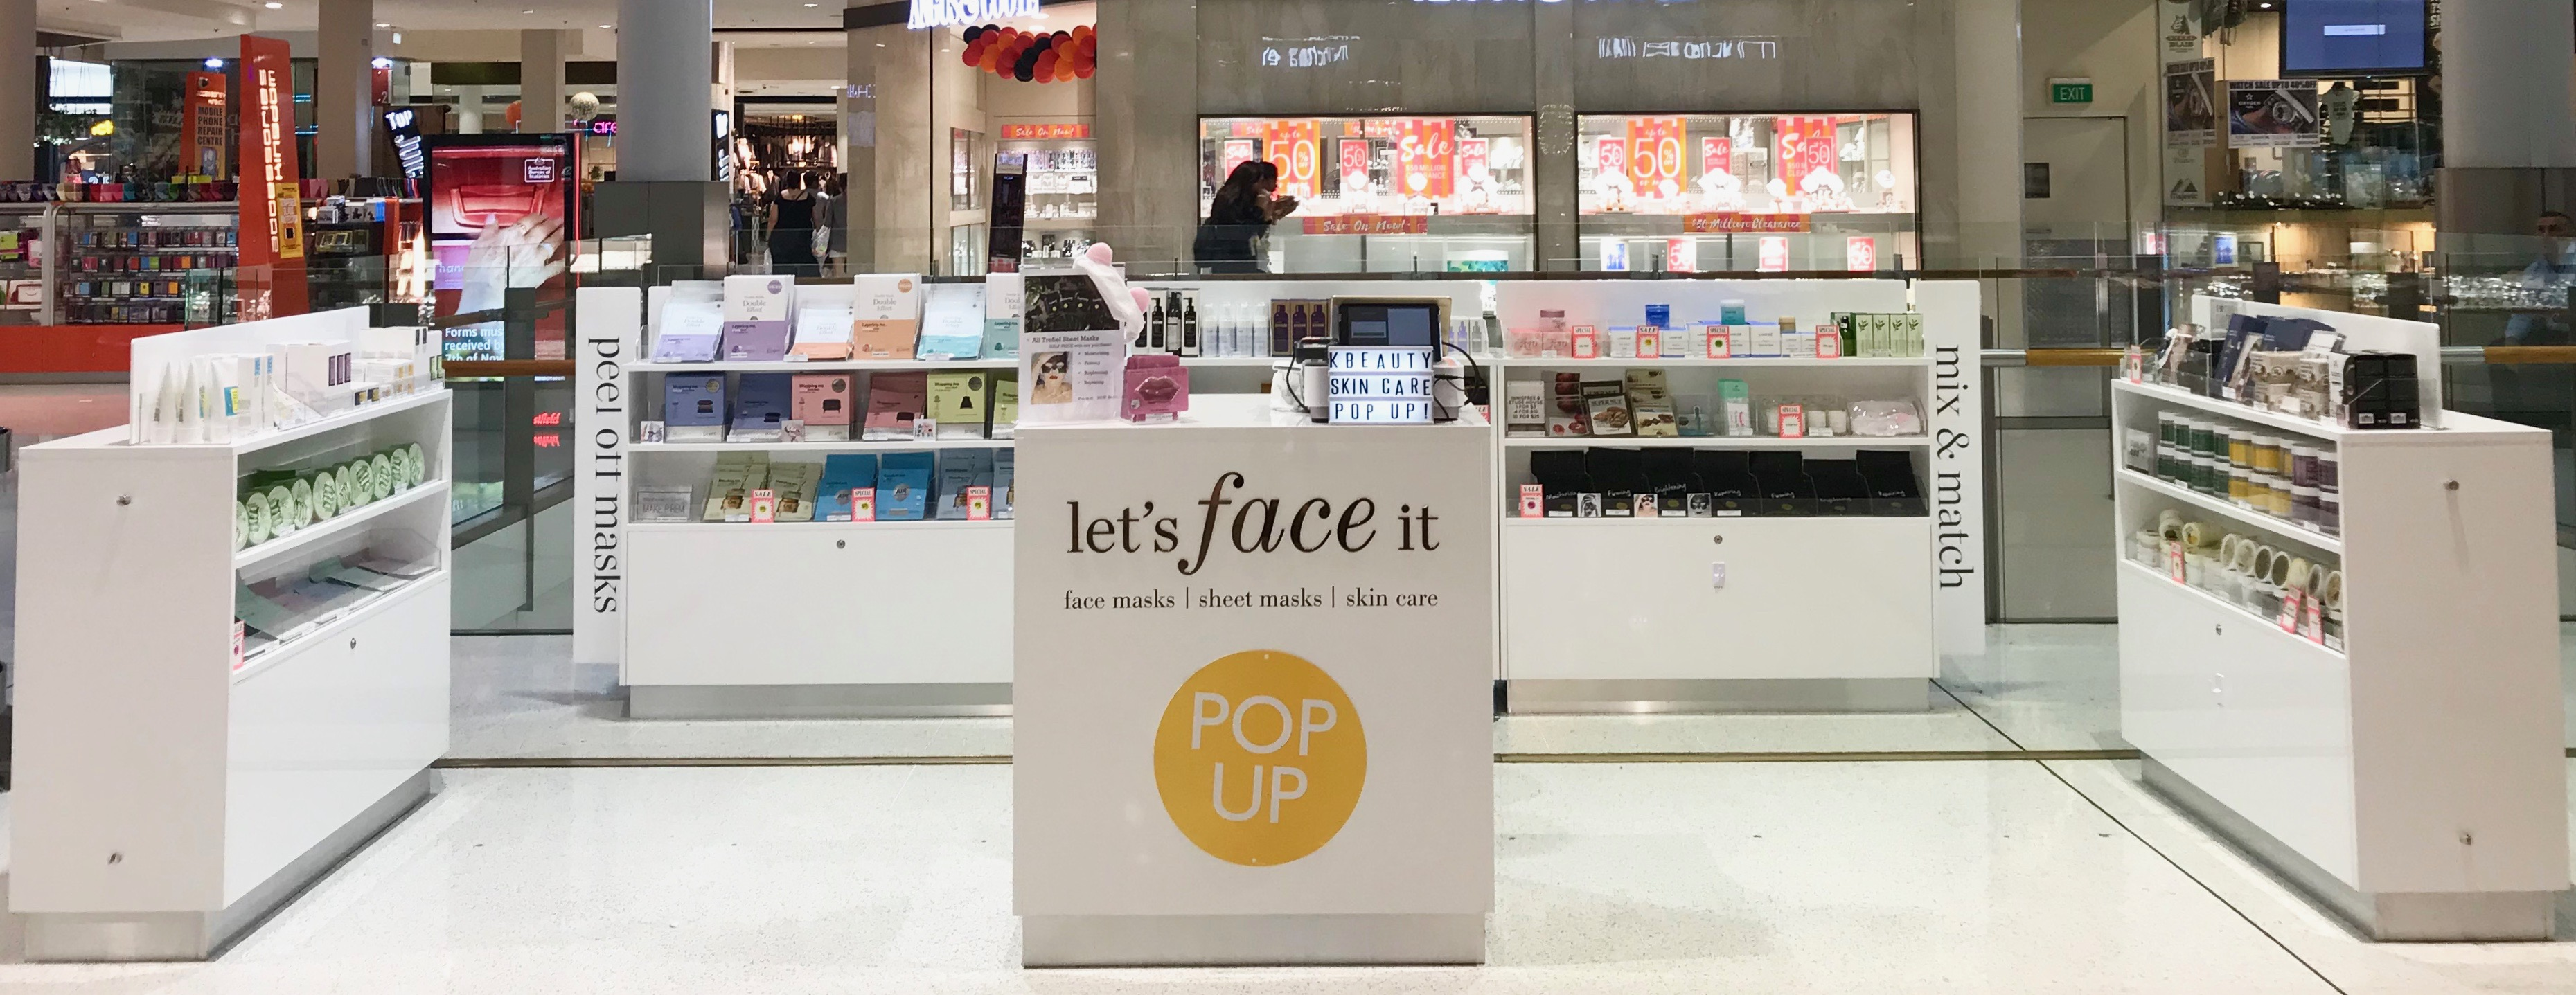 Lets Face It Korean skincare pop up store in Westfield Liverpool